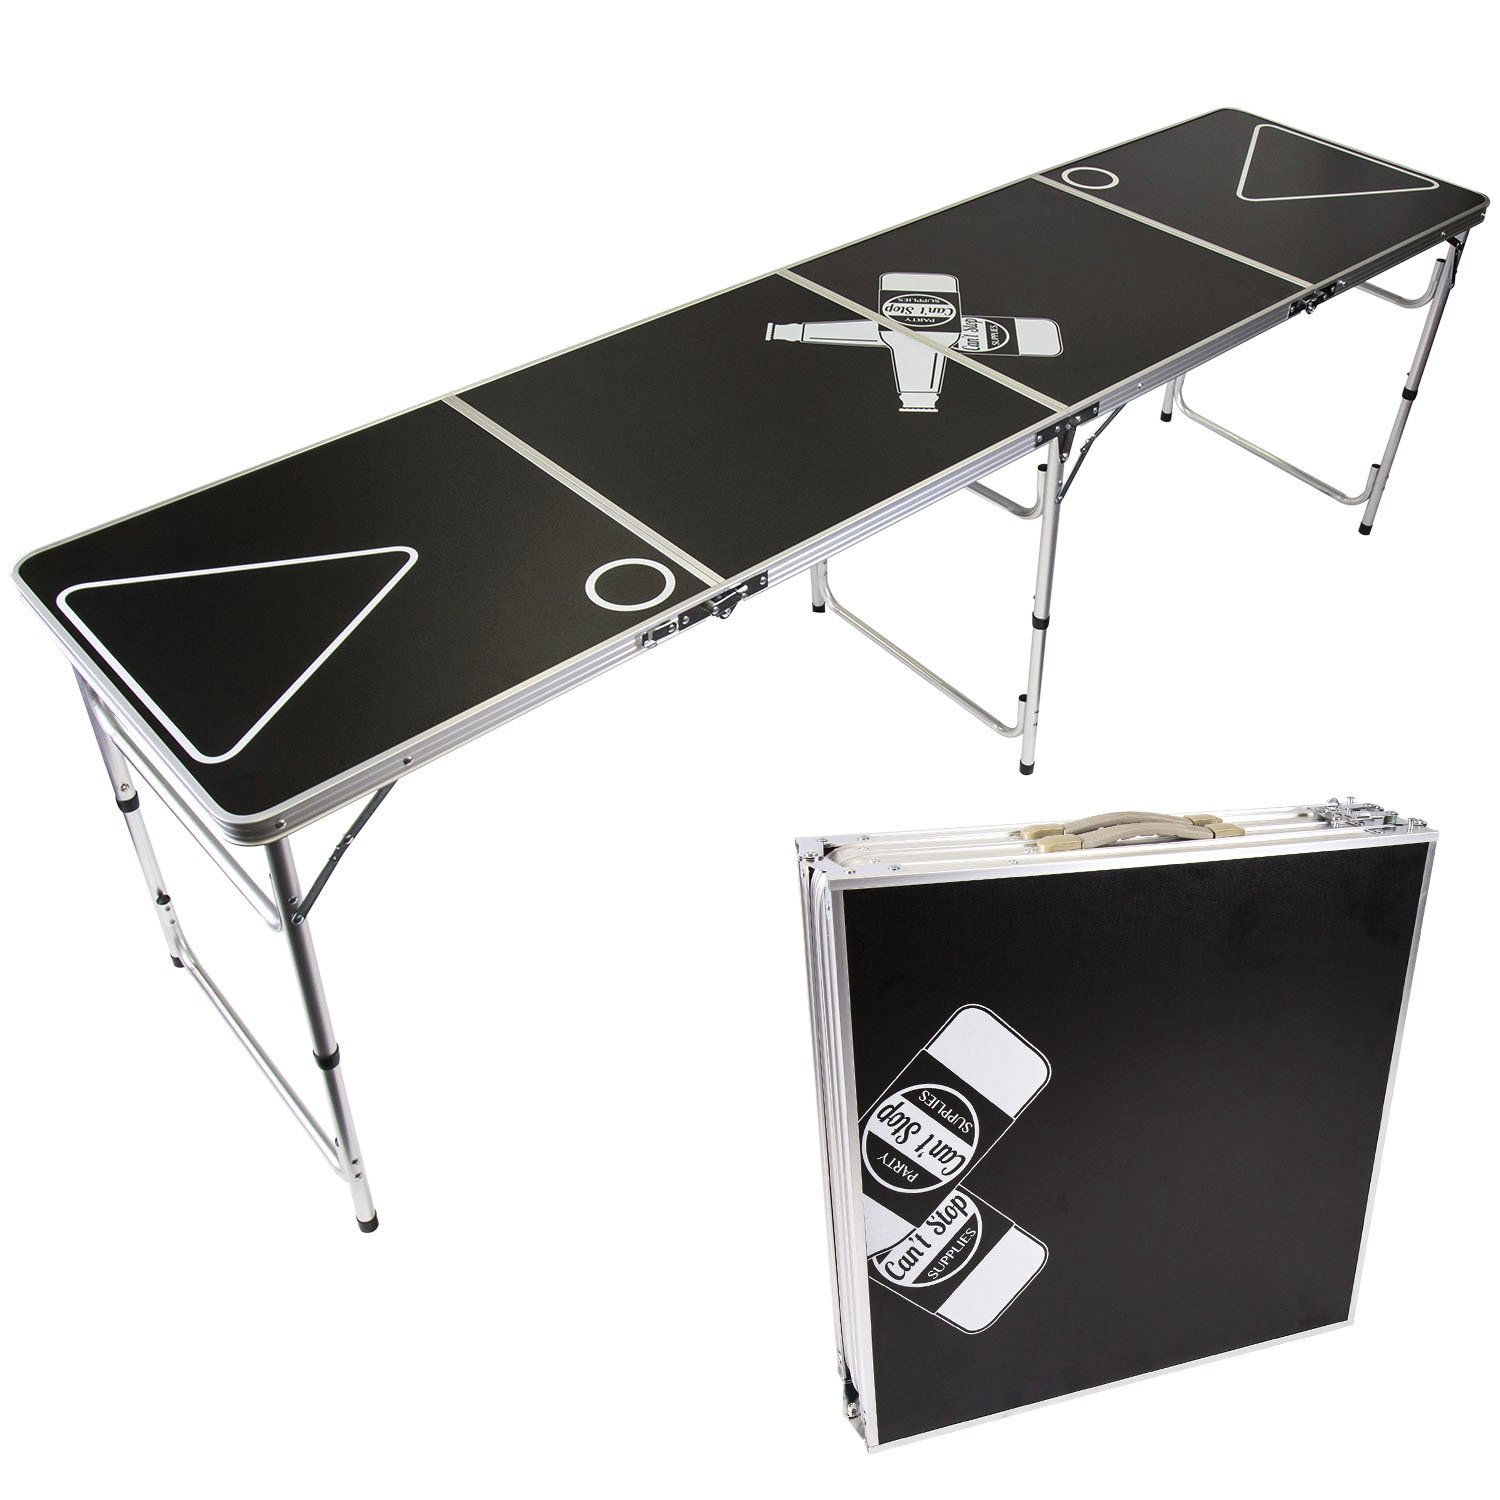 Can't Stop Party Supplies Portable Tailgating Beer Pong Table Easily Foldable w/ Adjustable Height Options - Beer Botle Design